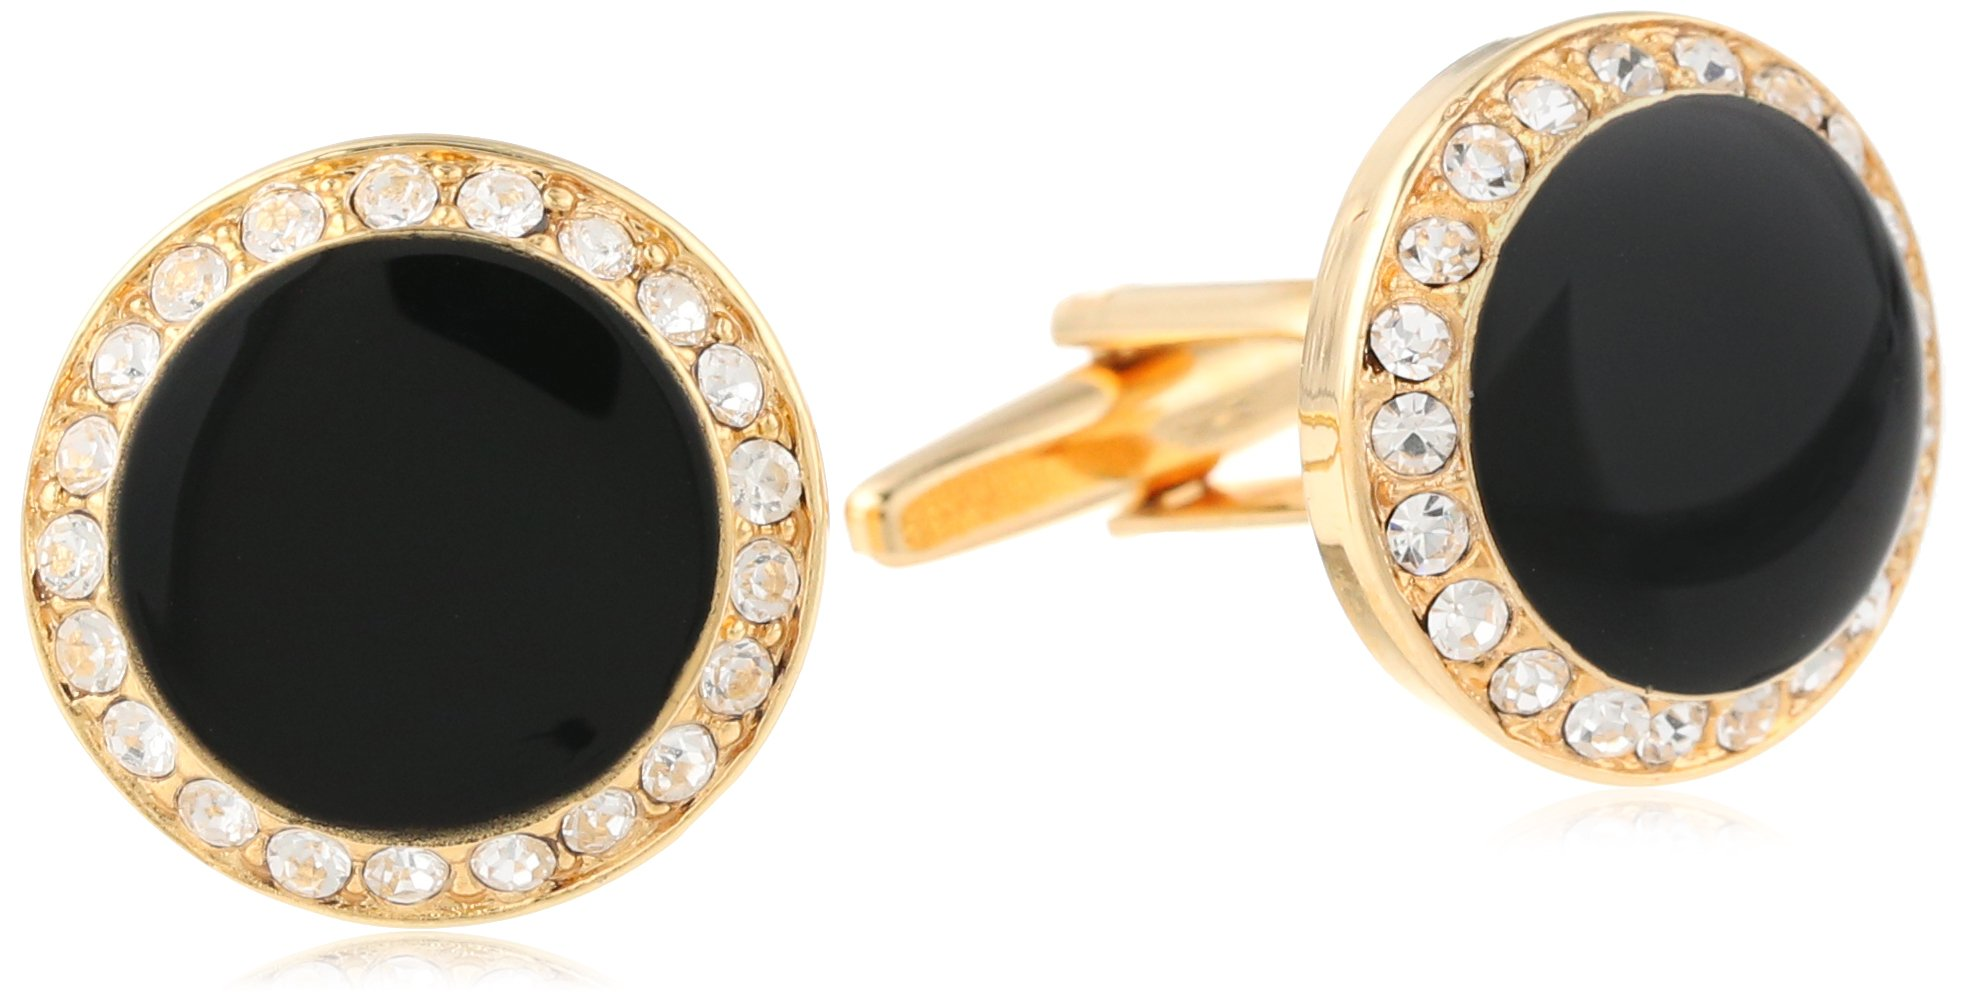 Stacy Adams Men's Round Cuff Link With Black Enamel and Crystals, Gold/Crystal, One Size